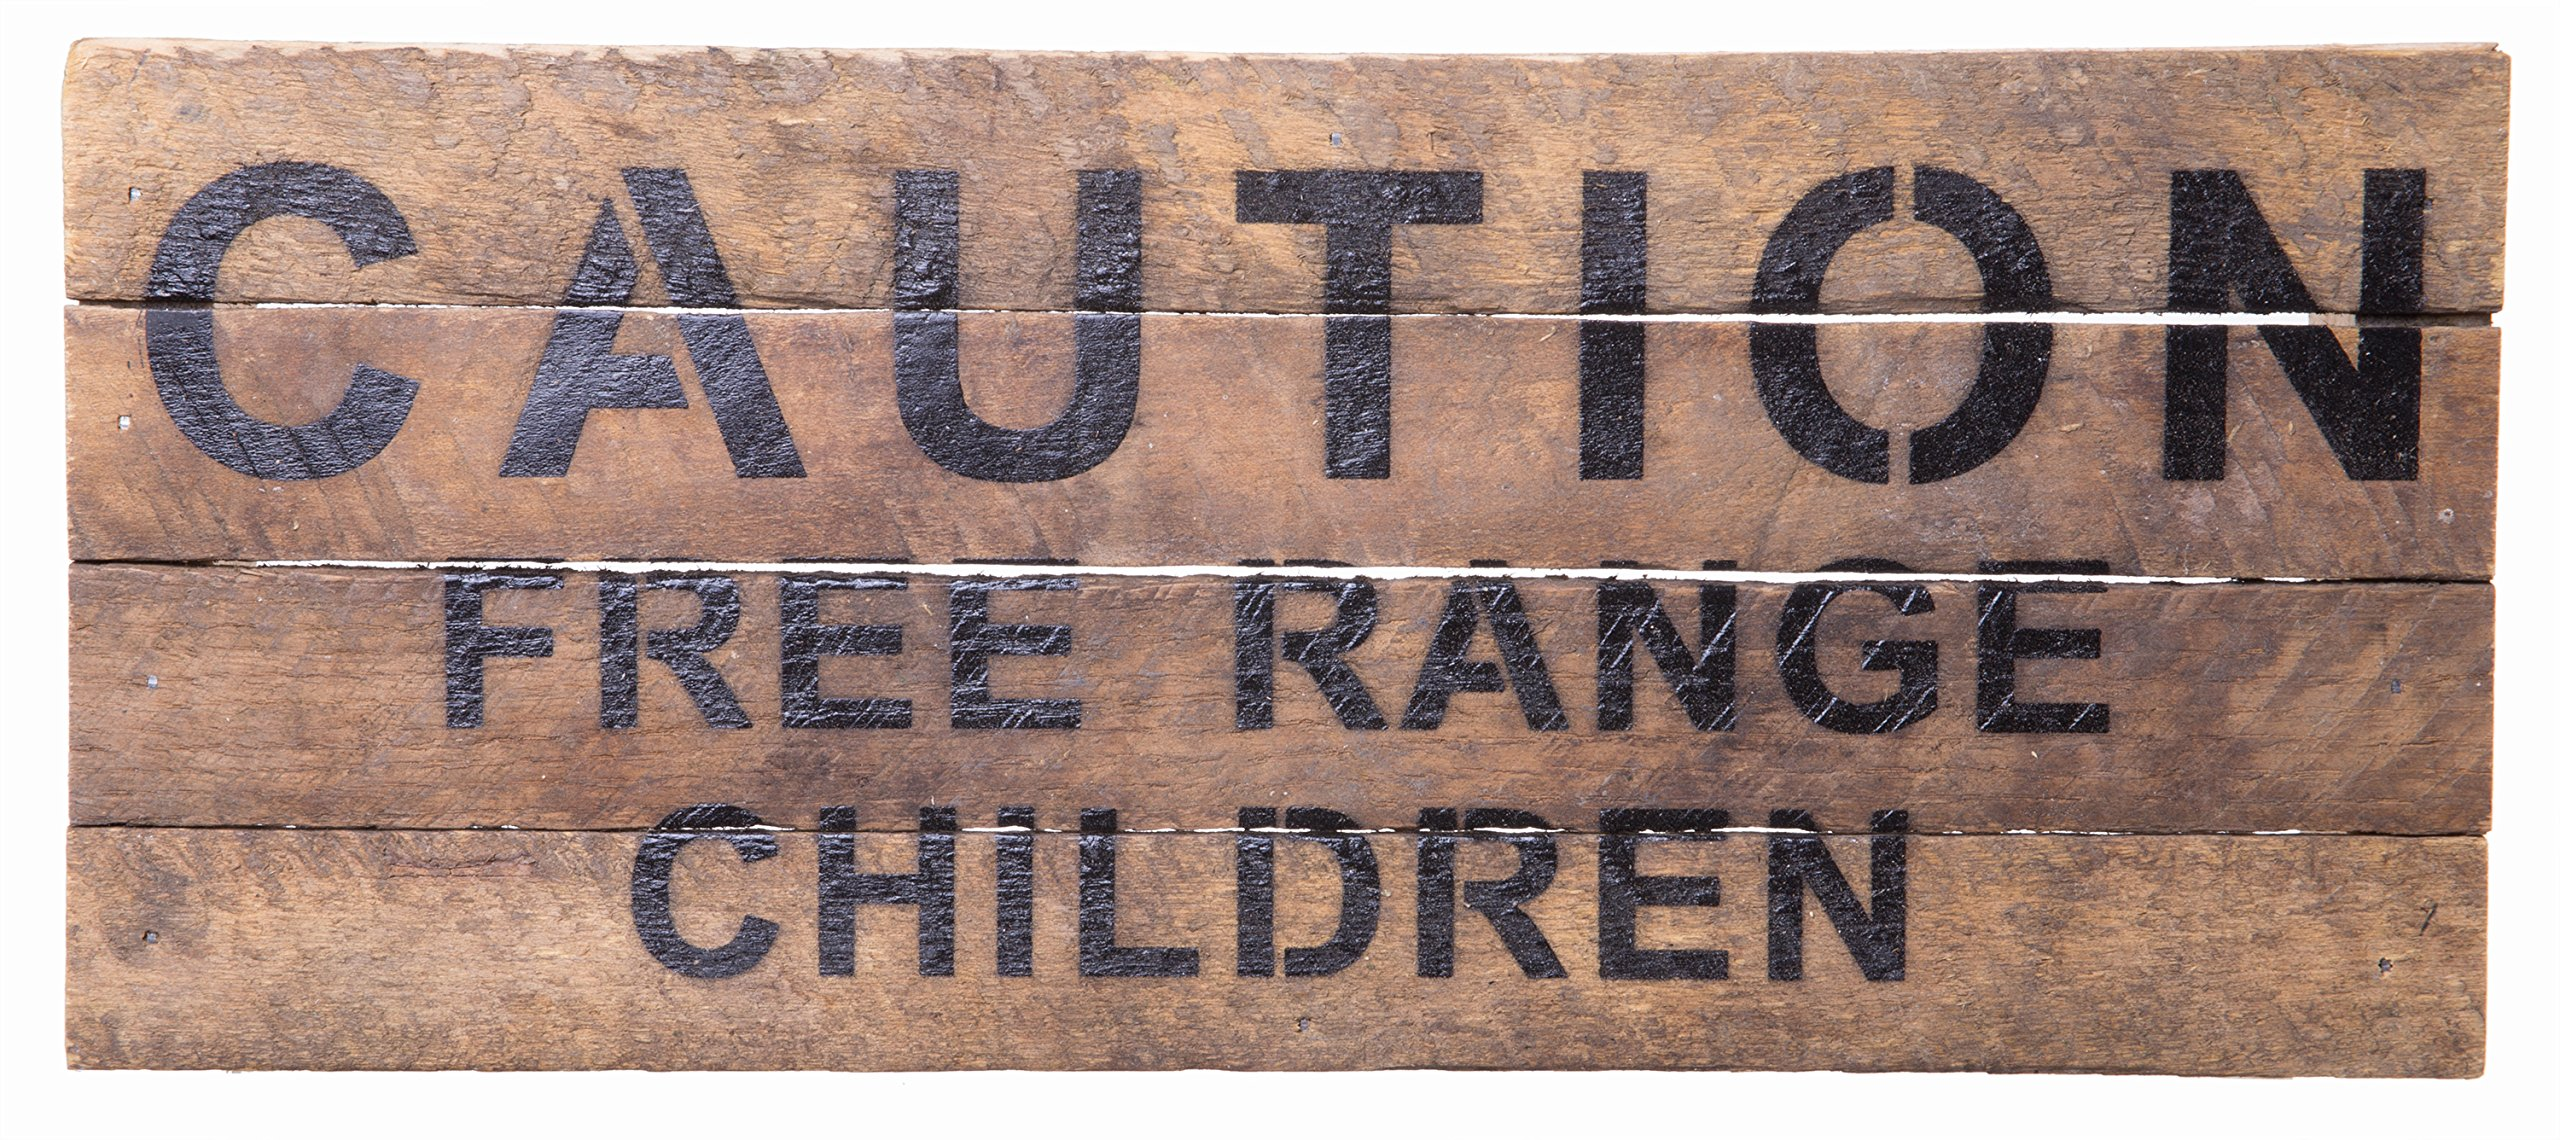 Second Nature By Hand Caution Free Range Children - Reclaimed Pallet Wood Wall Art, Handcrafted Decorative Plaque, 14'' x 6''